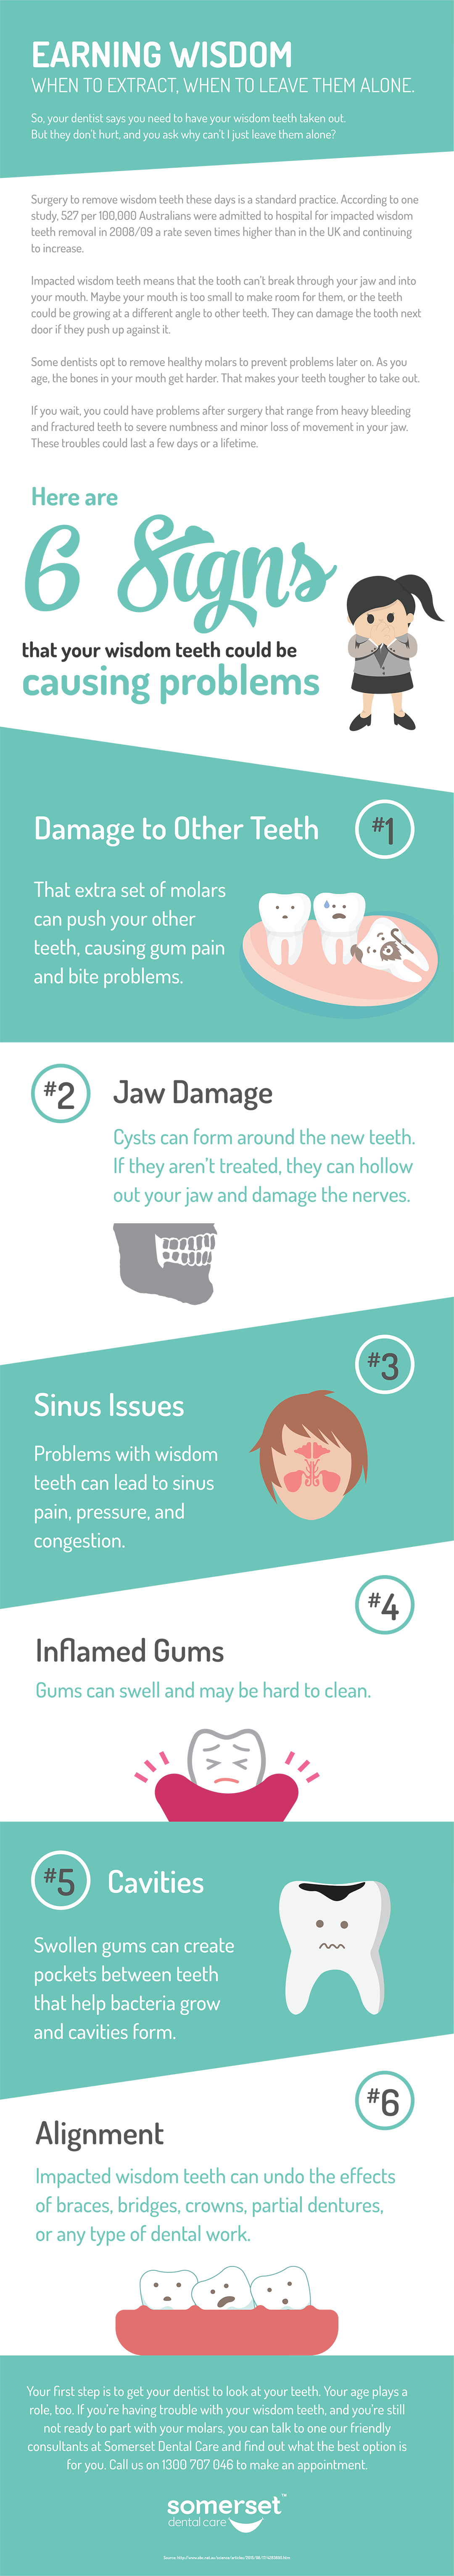 Infographic - Should You Extract Your Wisdom Teeth